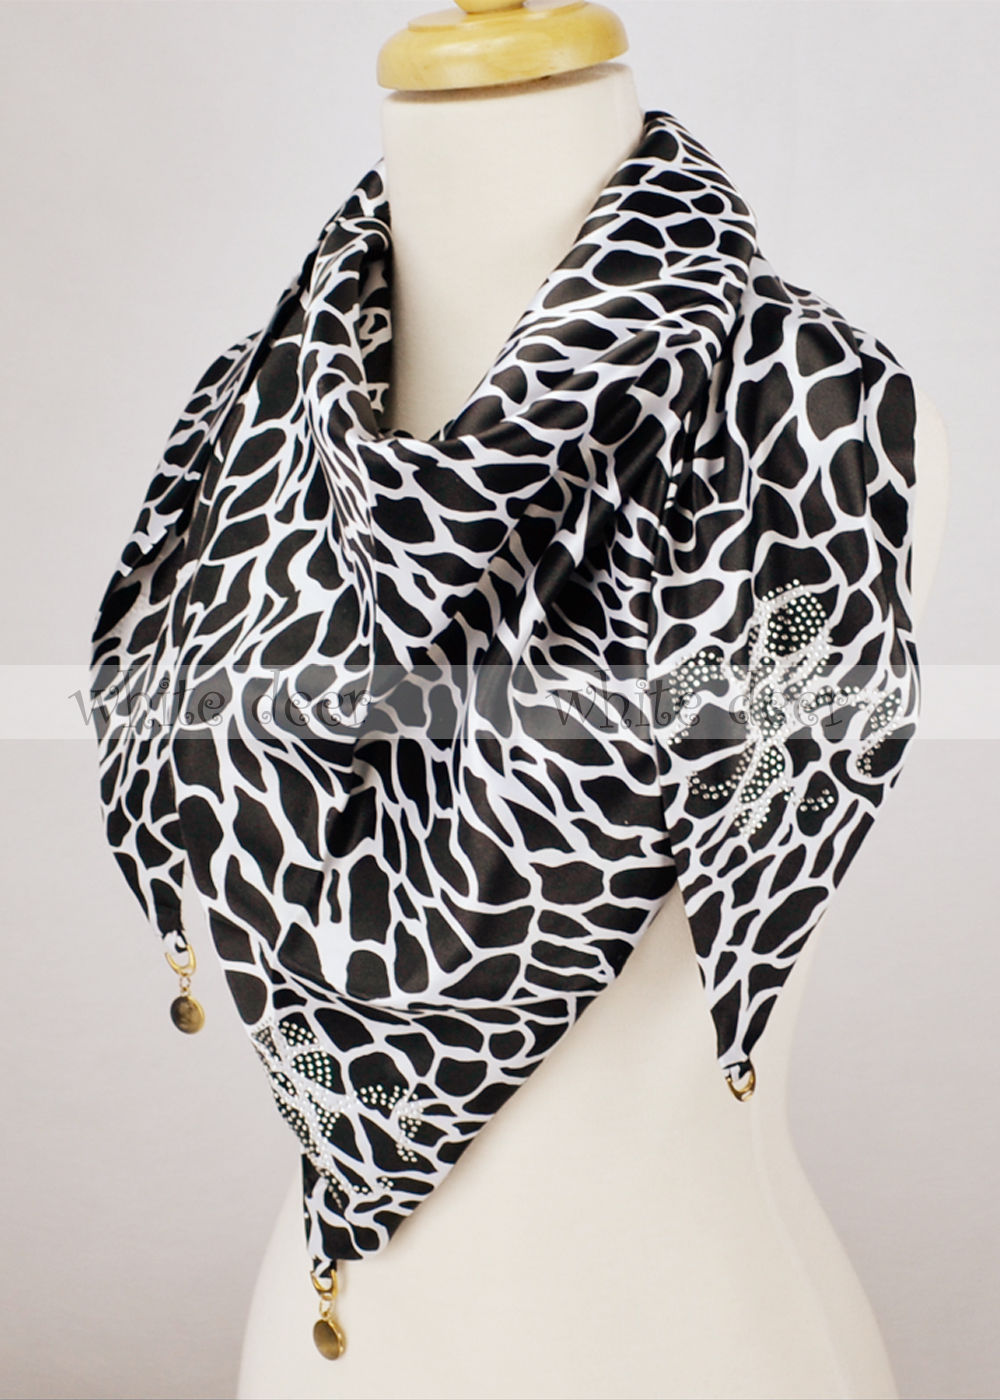 Primary image for 100% Silk Triangle Scarf Giraffe Print Fluer De Lis Rhinestone Coin Double Layer